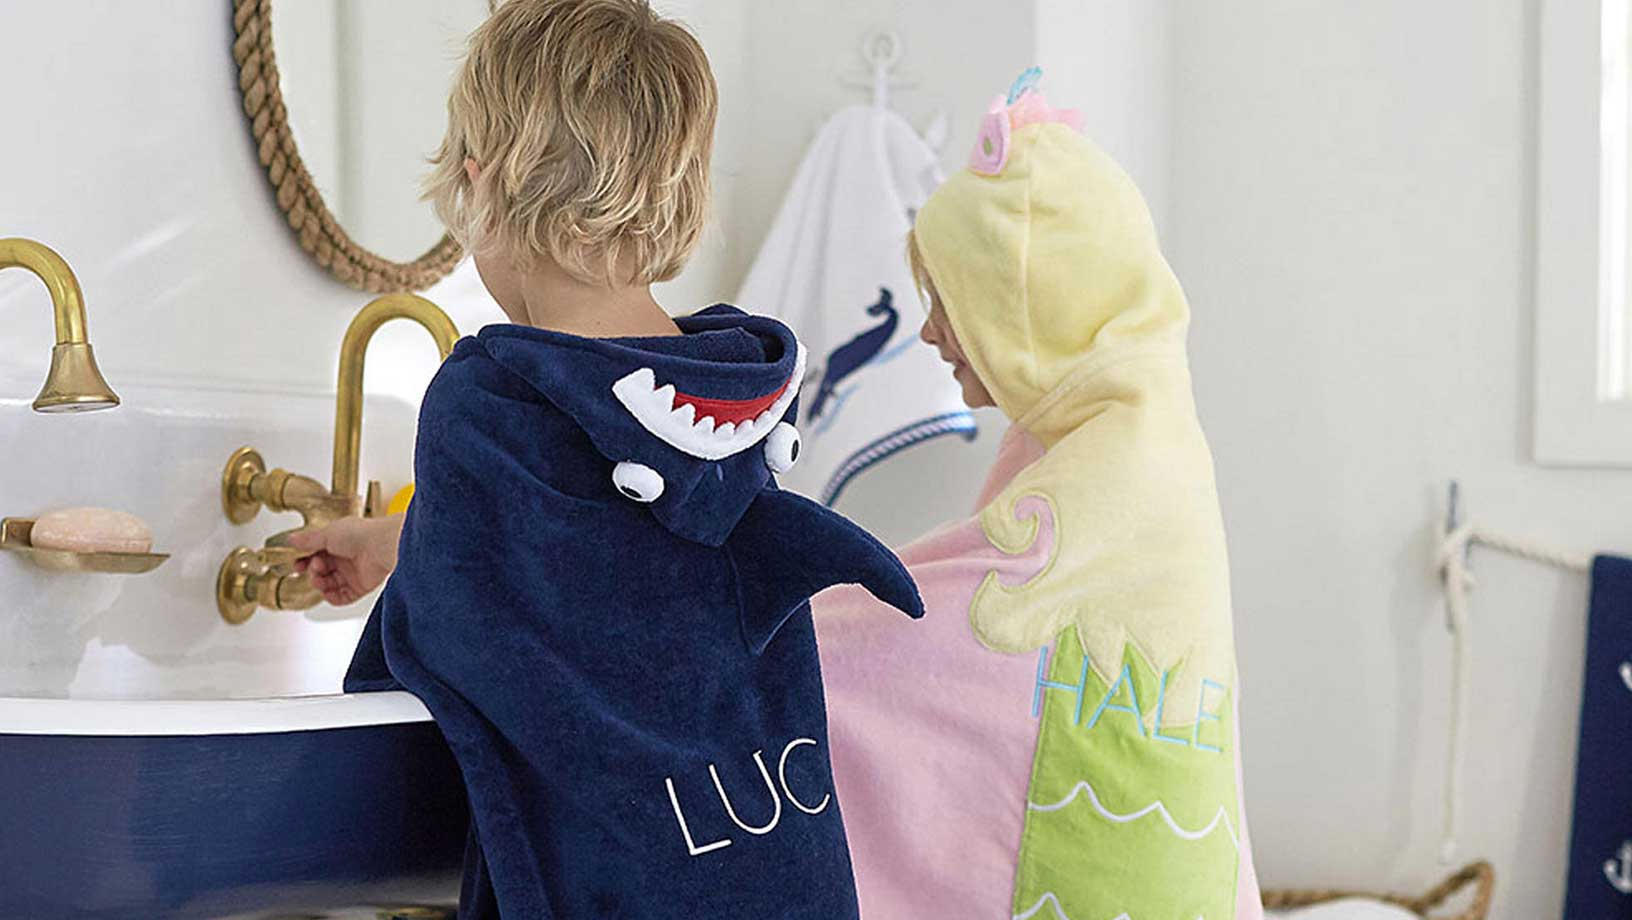 A young boy and girl wearing Pottery Barn Hooded Towels while washing their hands at a navy and white skink. The boy wears a navy towel with a skark on the hood and the girl wears a pink yellow blue and green towel with a unicorn on the hood.